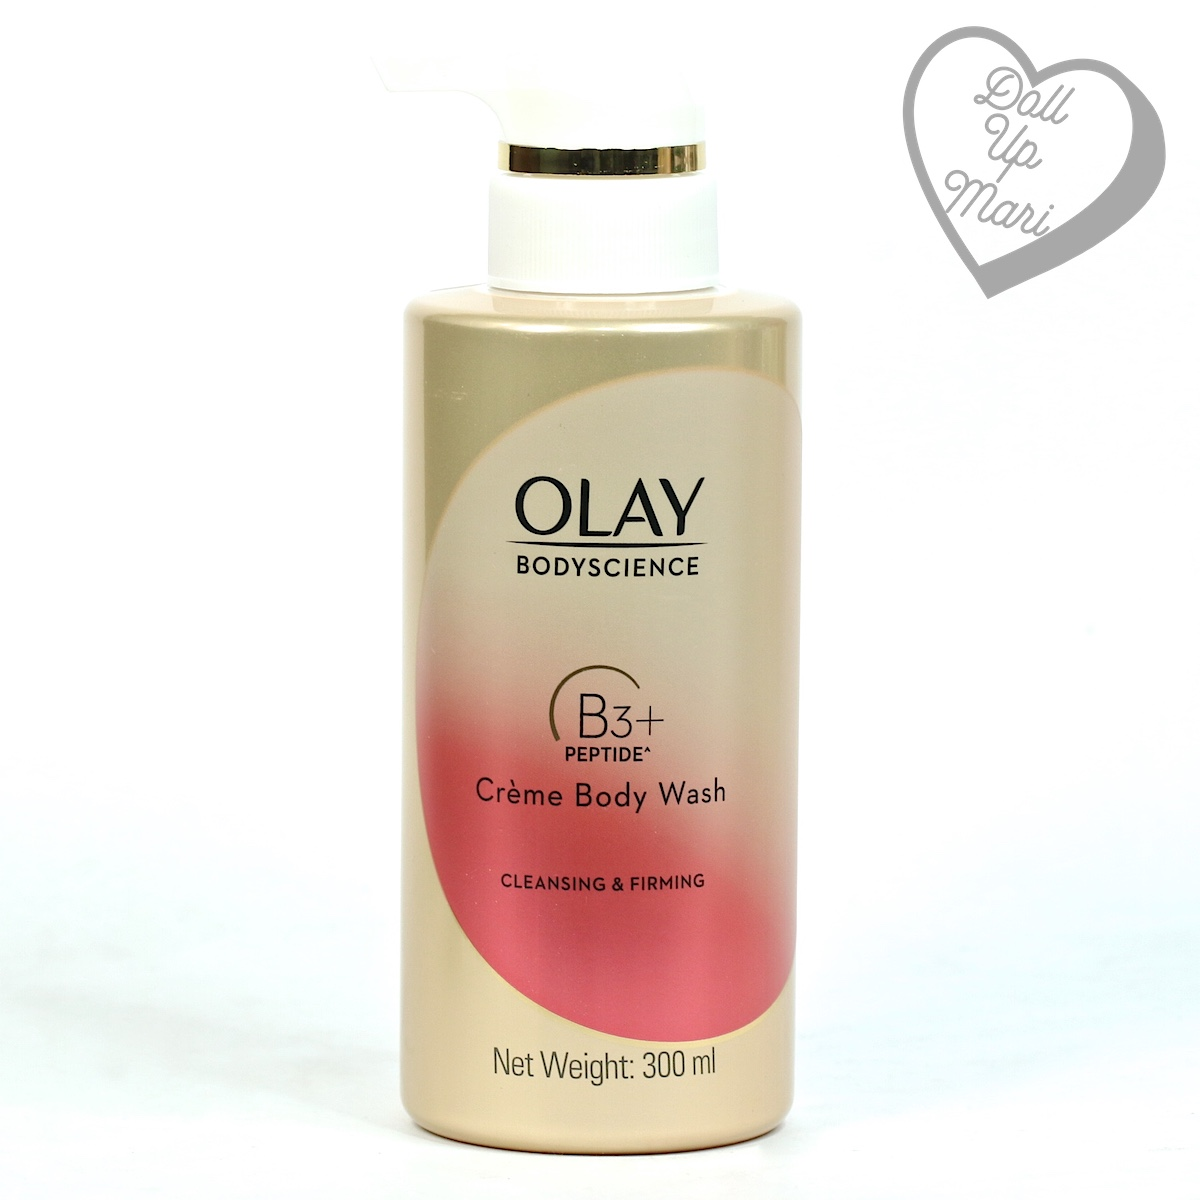 Olay BodyScience Crème Body Wash Cleansing and Firming with Peptide Pack Shot